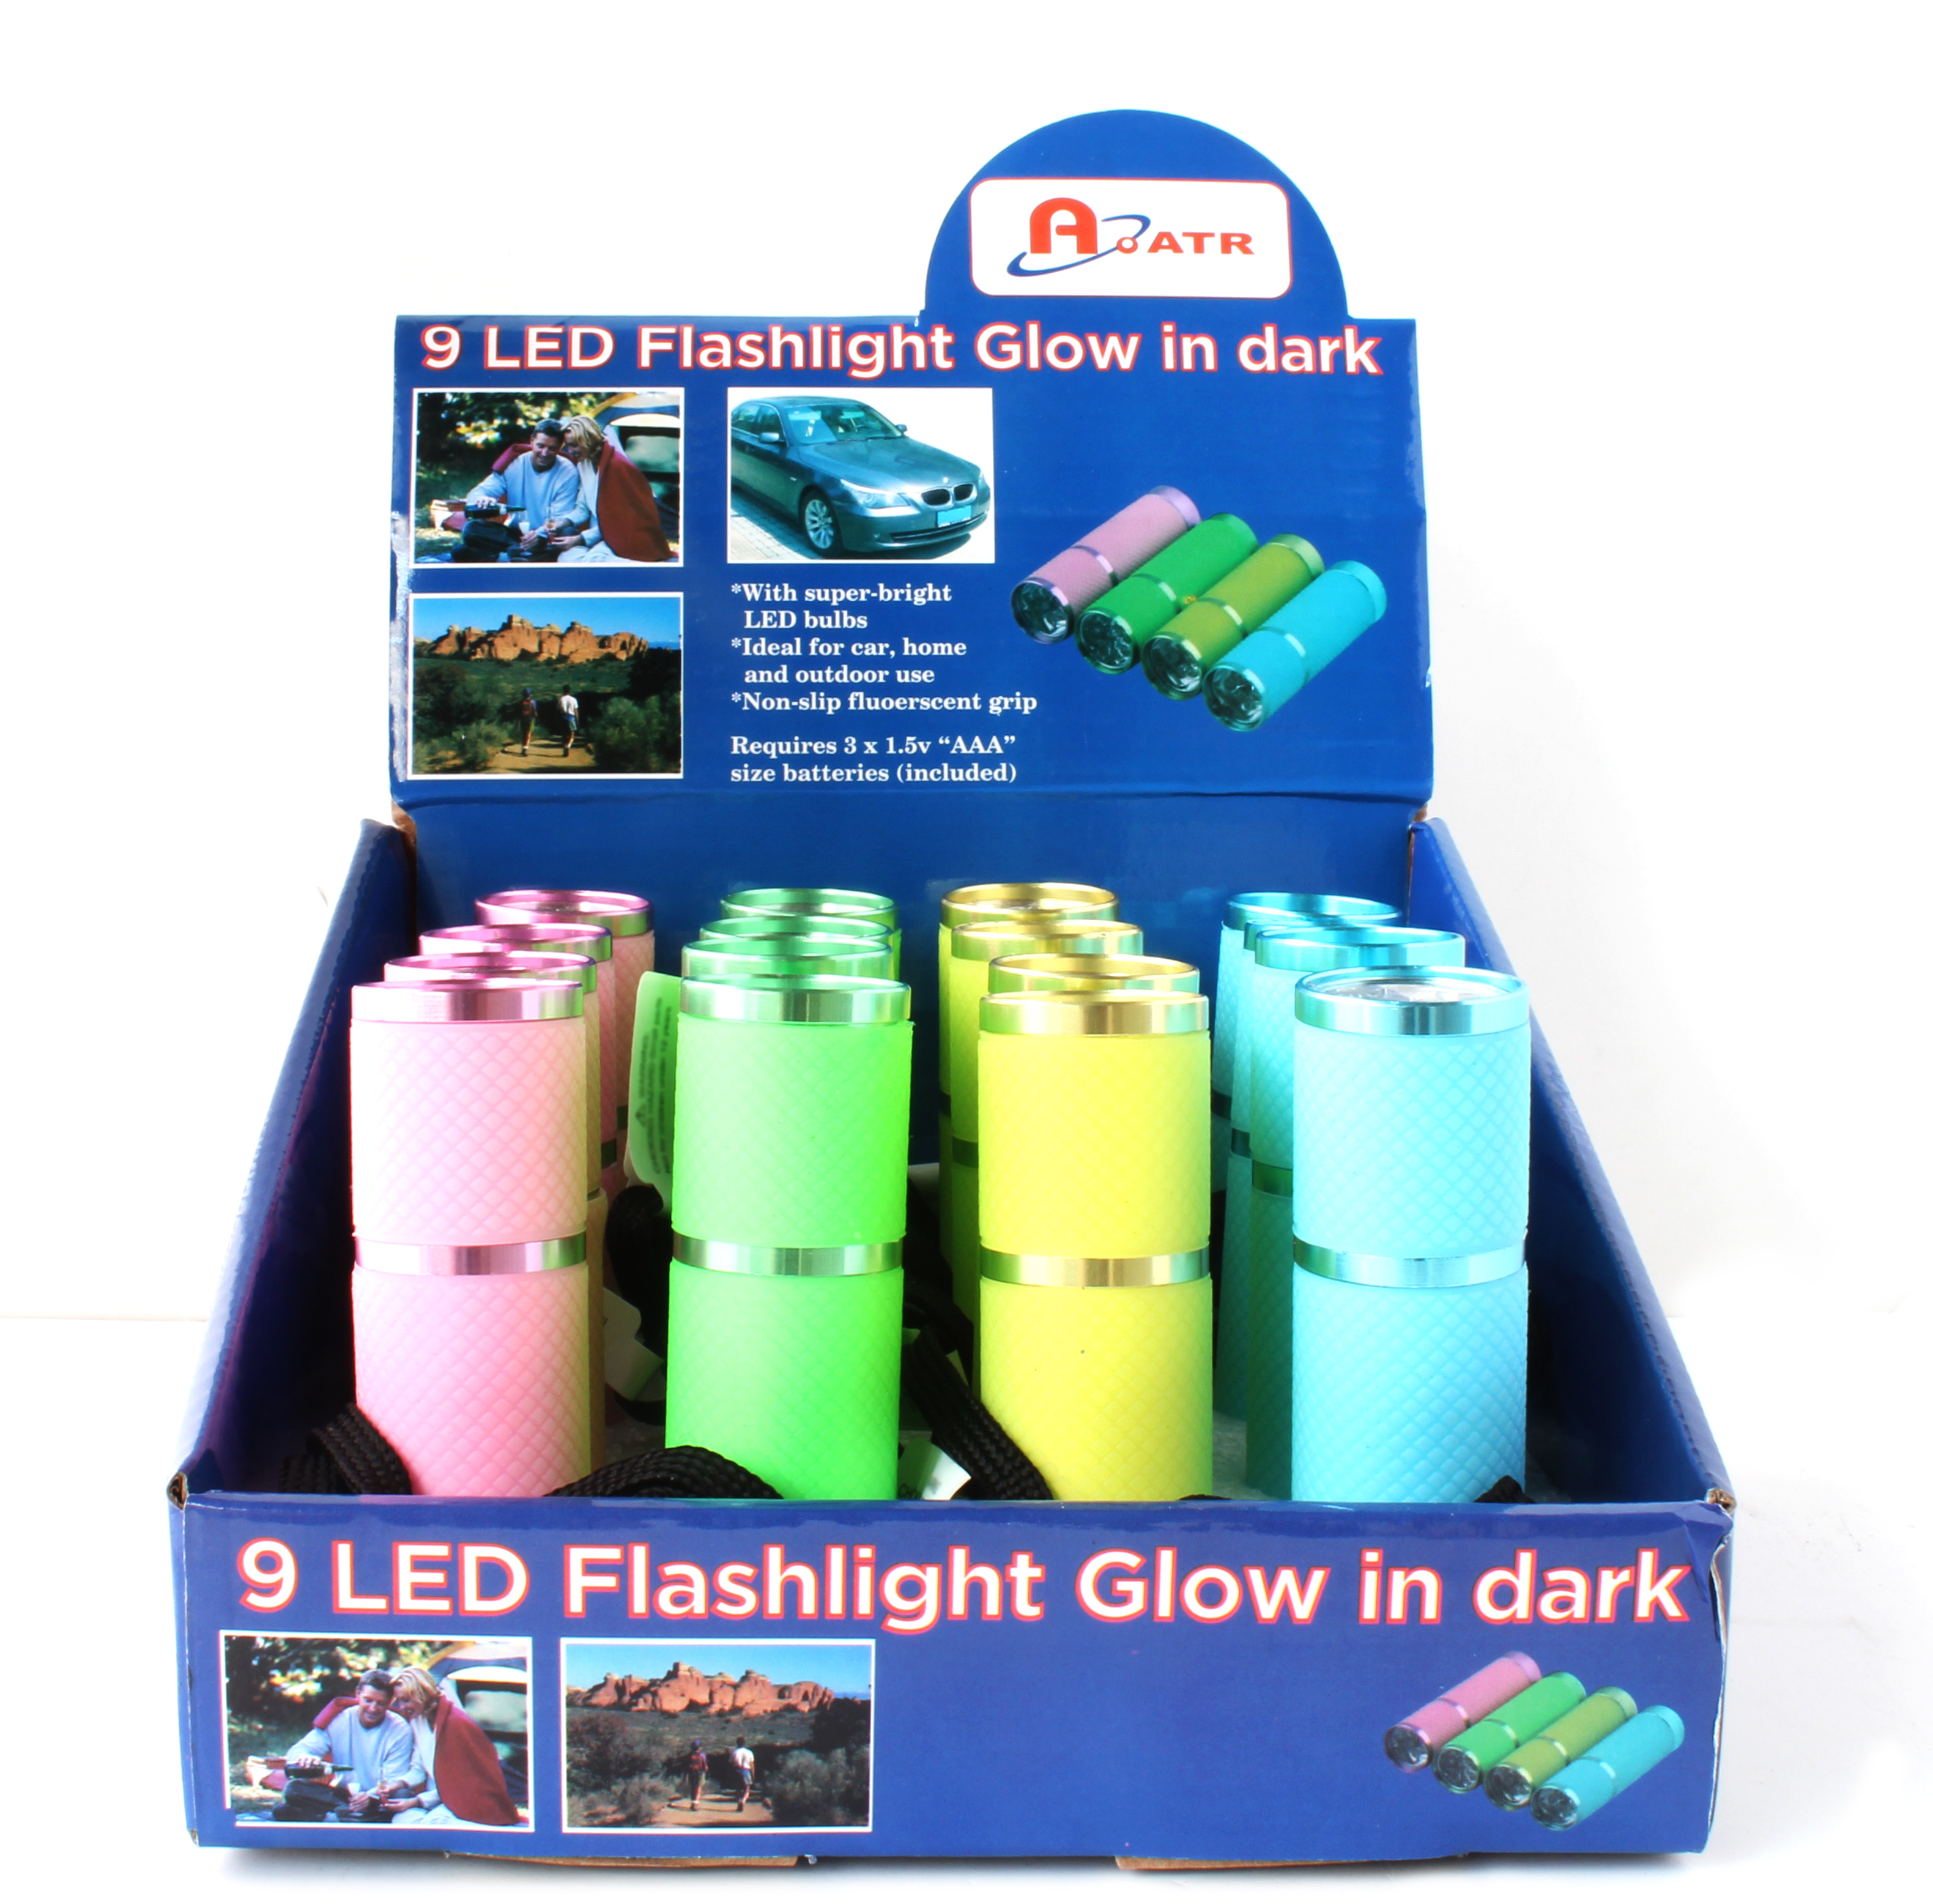 9 LED Glow-in-the-dark Flashlight